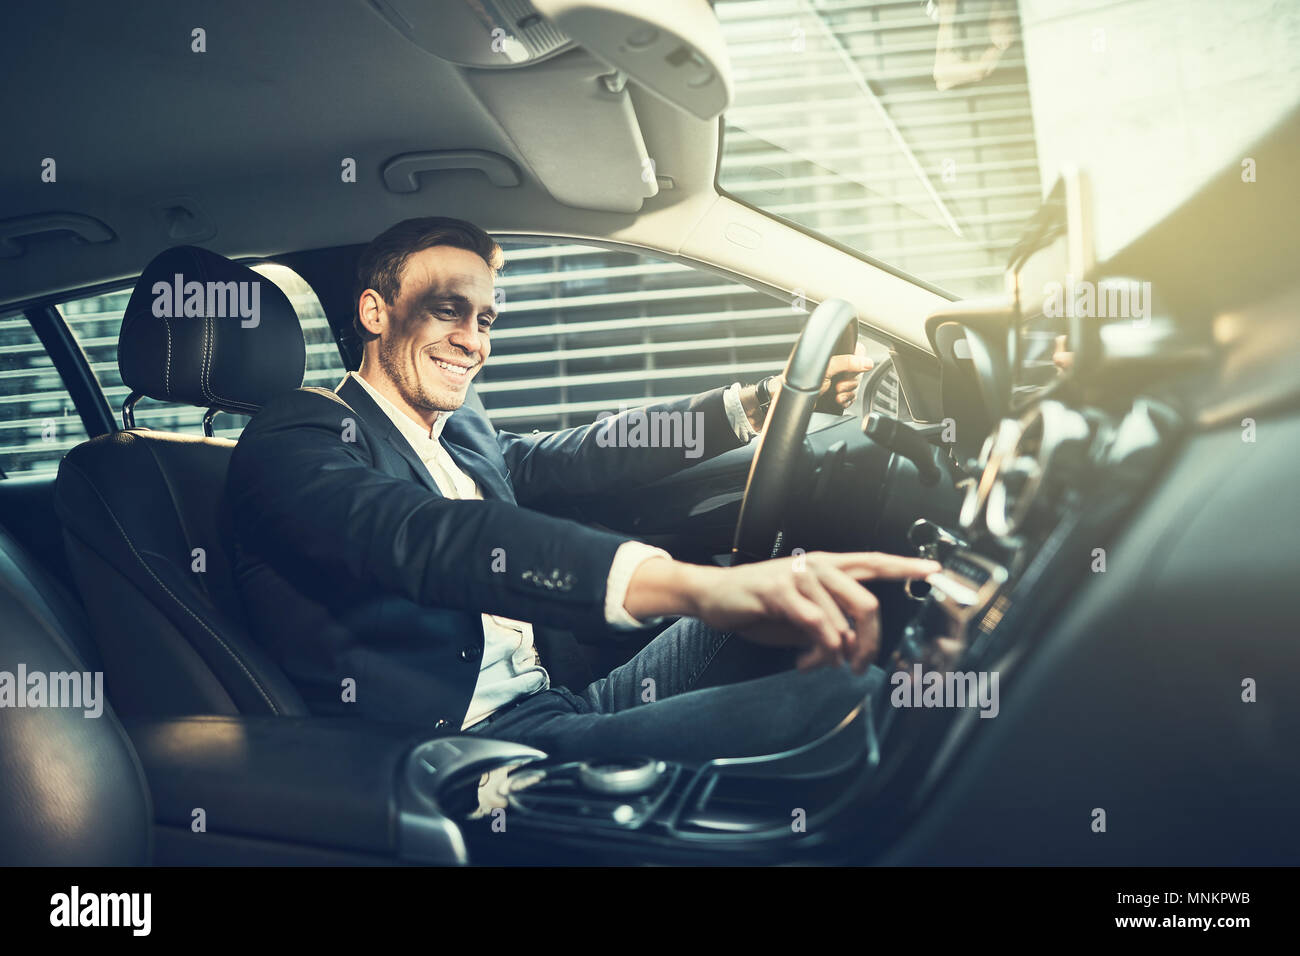 Smiling young businessman wearing a blazer changing radio stations while driving his car through the city during his morning commute to work - Stock Image